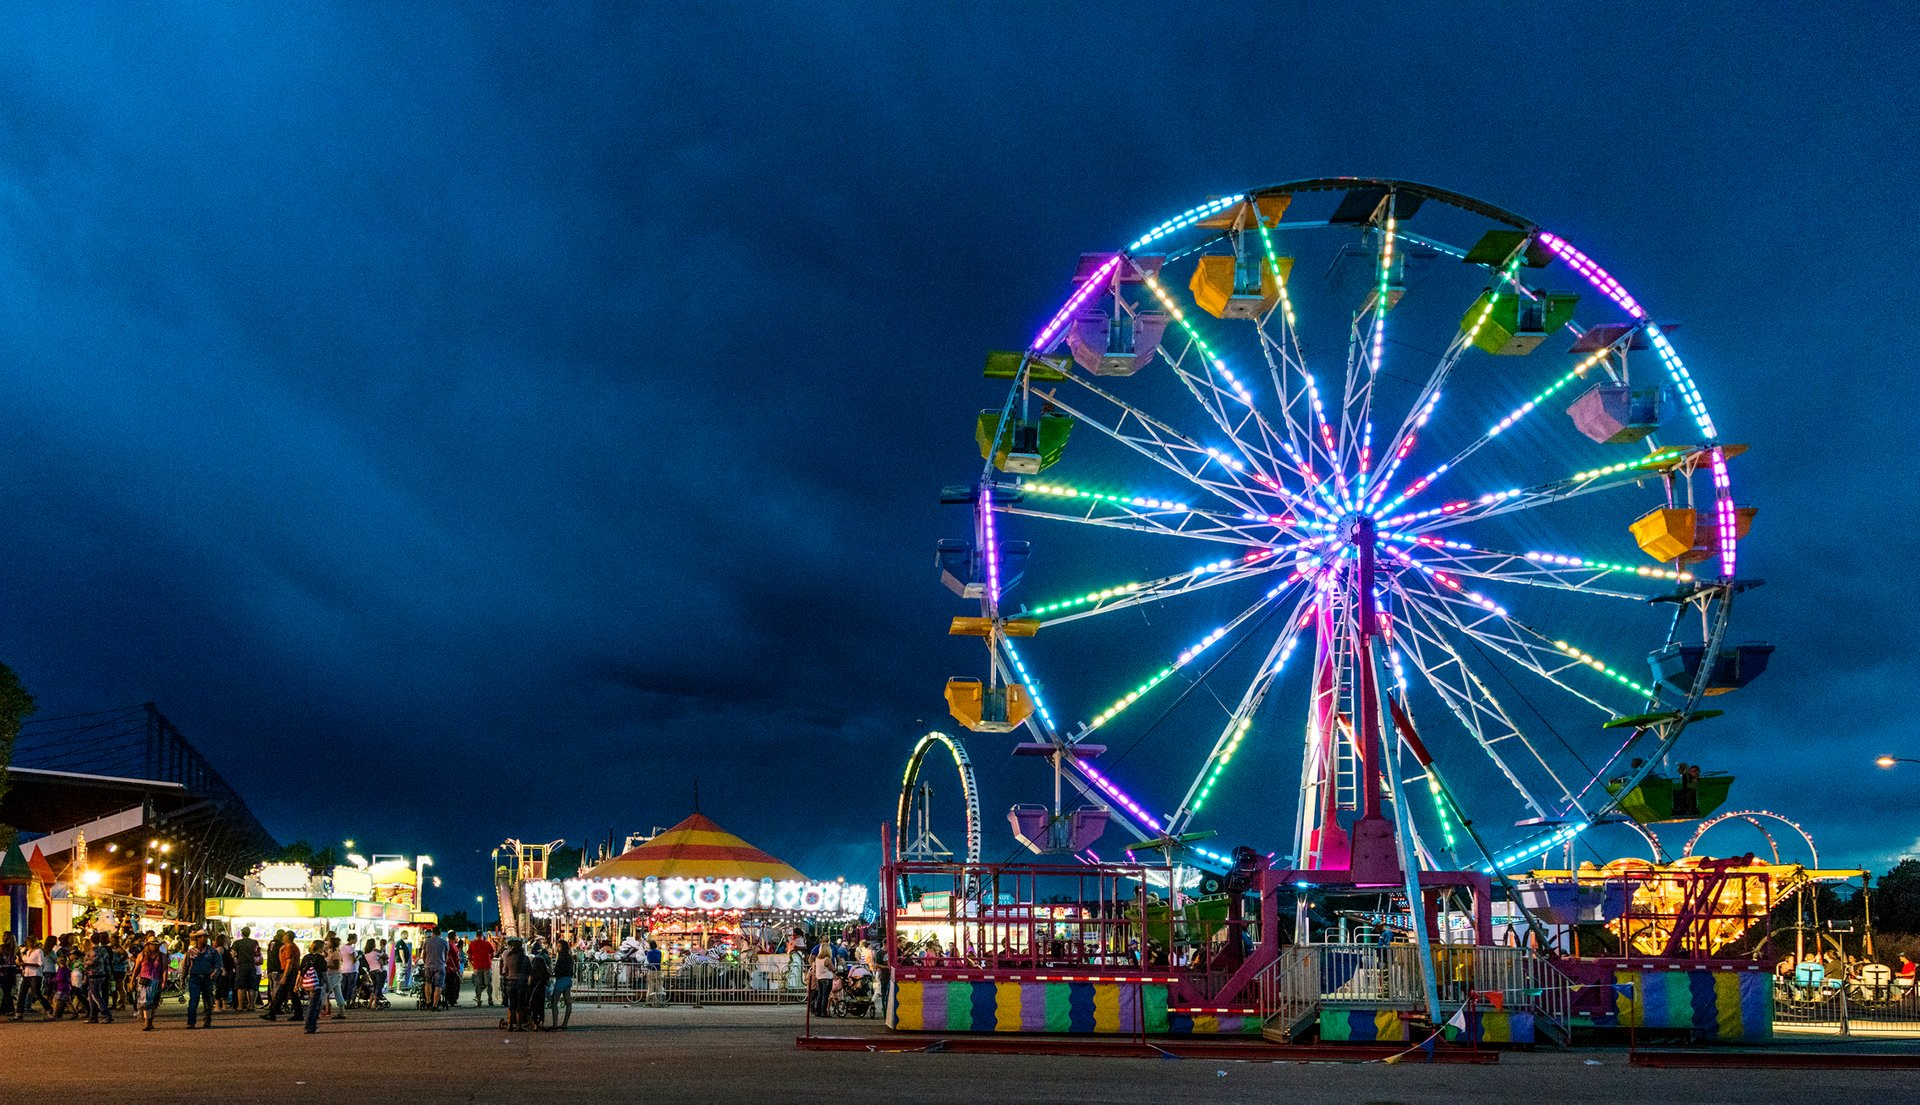 Wyoming State Fair in Wyoming 2020 - Best Time